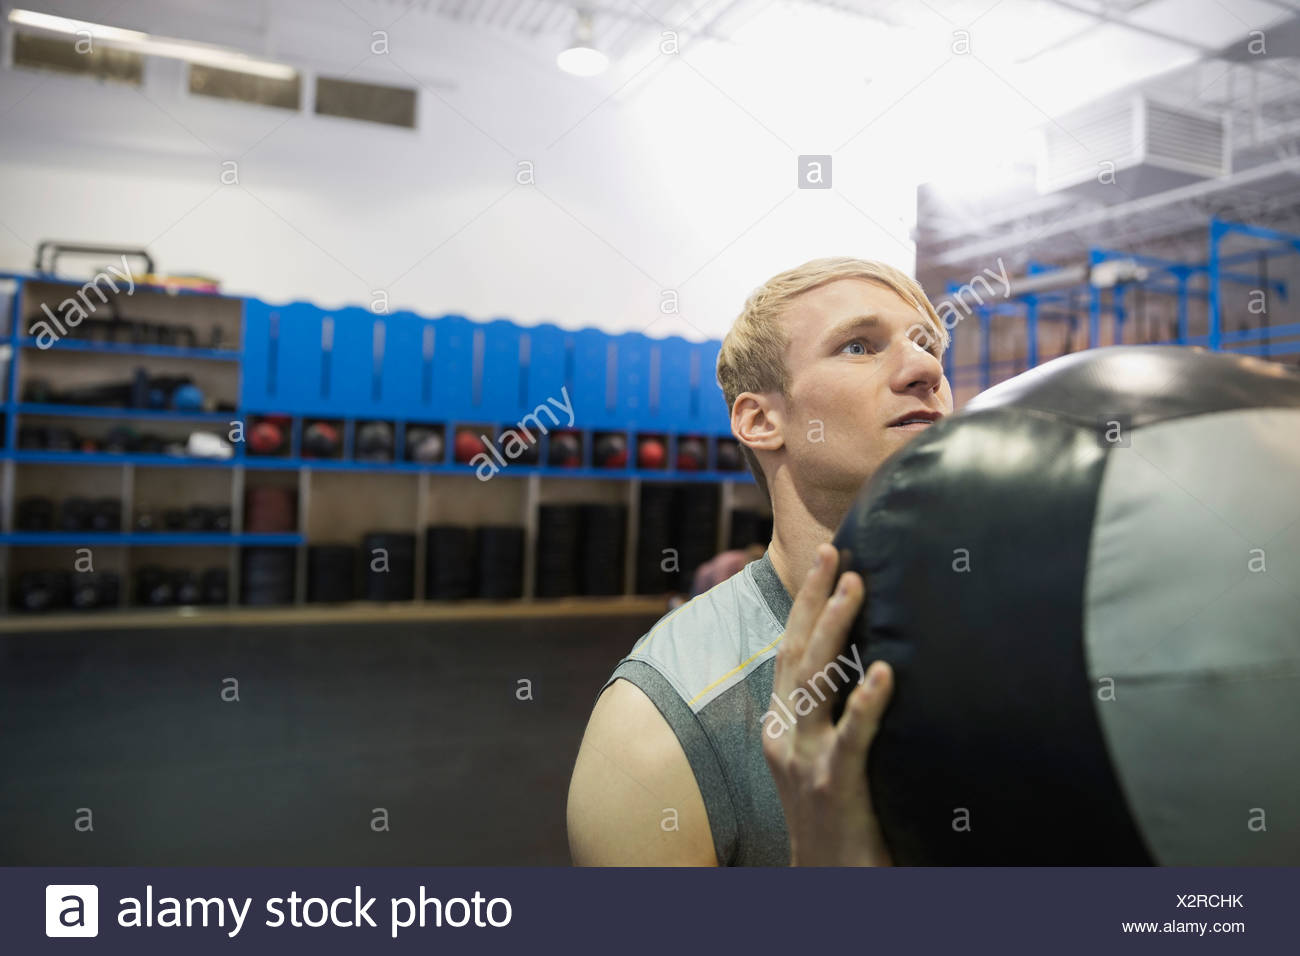 Man exercising with medicine ball - Stock Image